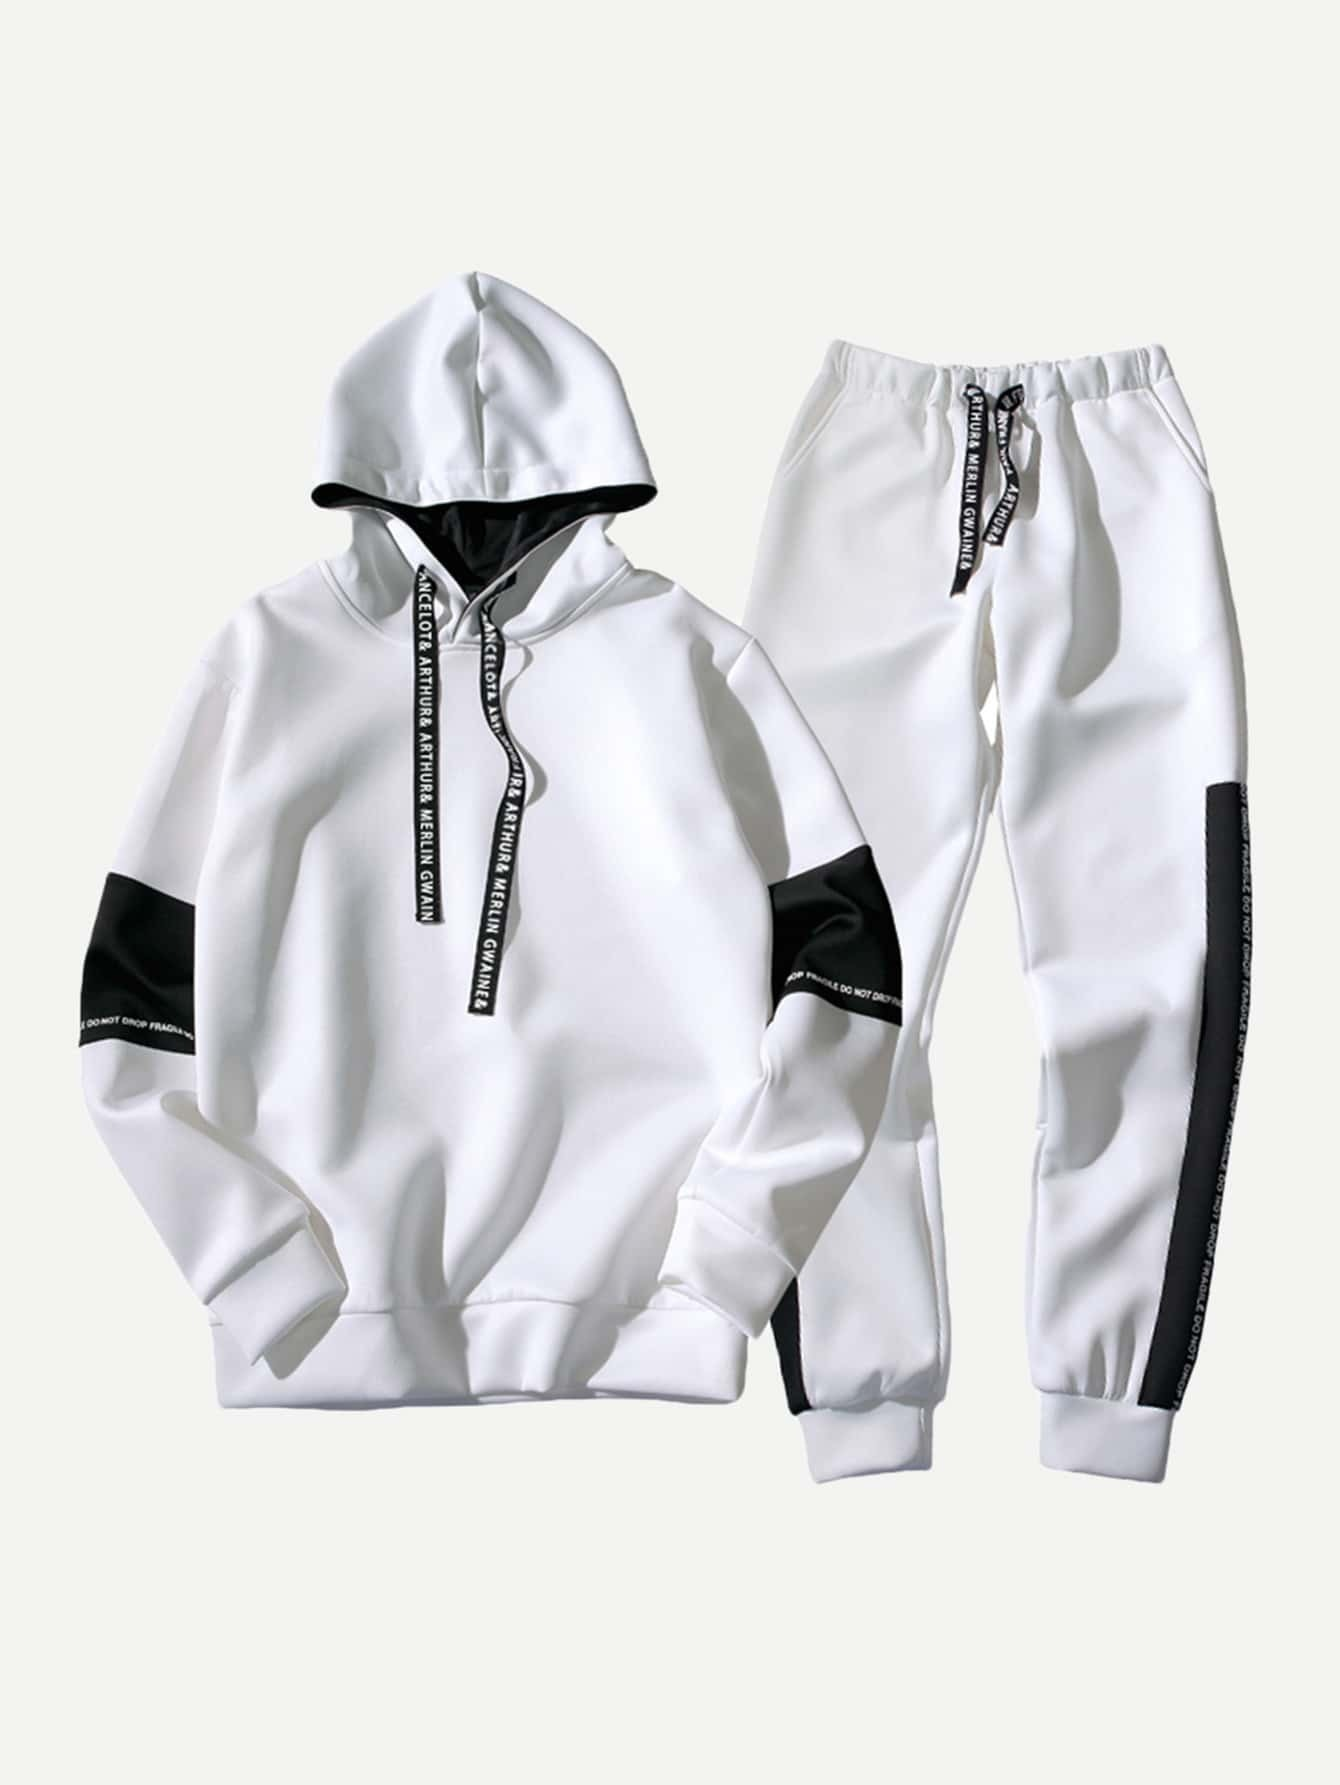 Men Contrast Panel Letter Print Hooded Sweatshirt With Drawstring Pants ssd накопитель sandisk x600 sd9sn8w 512g 1122 512гб m 2 2280 sata iii